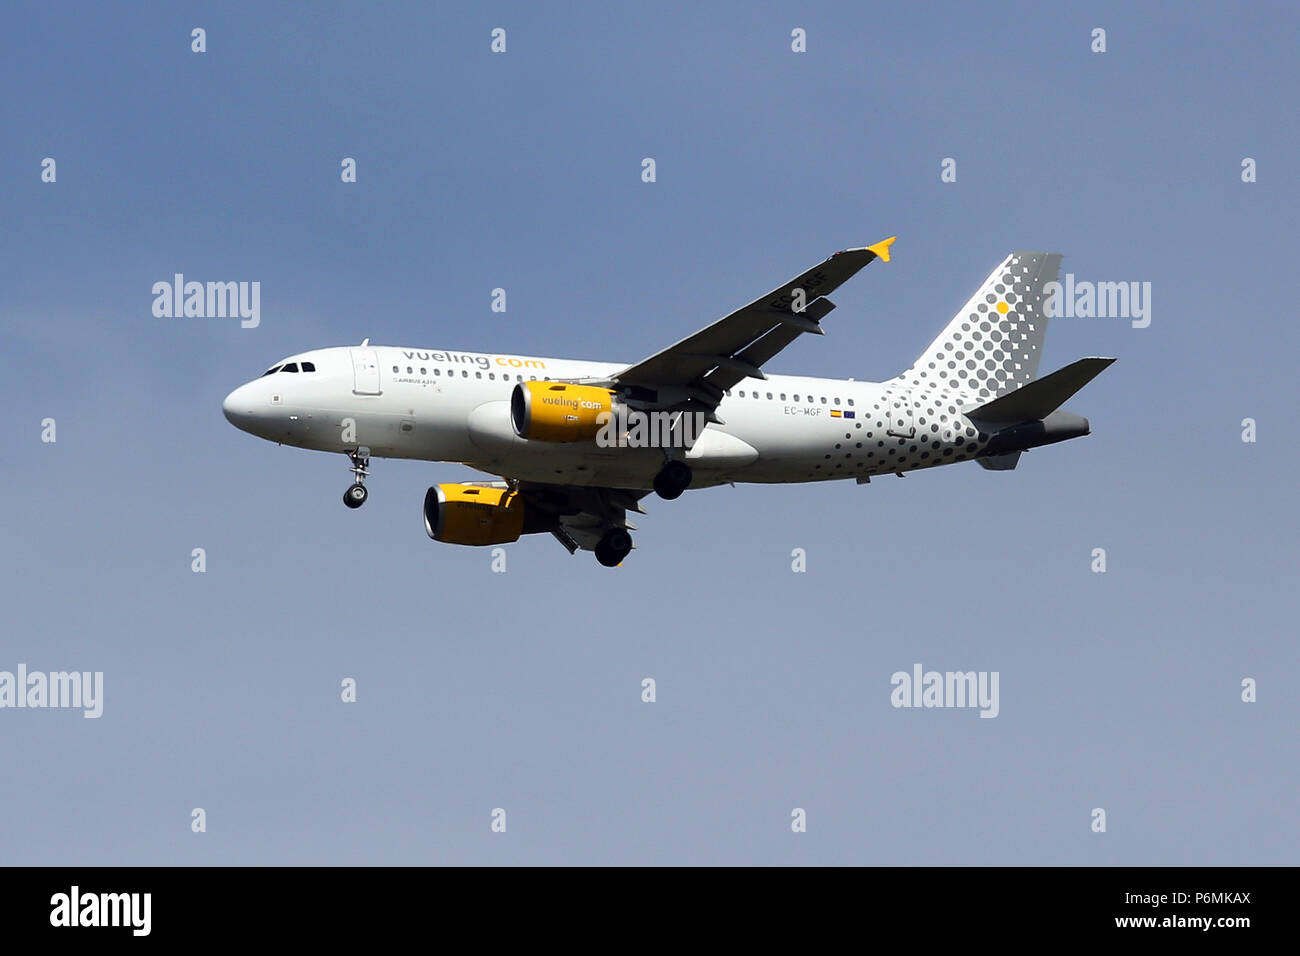 Hannover, Germany - Machine of the airline Vueling Airlines in the air - Stock Image